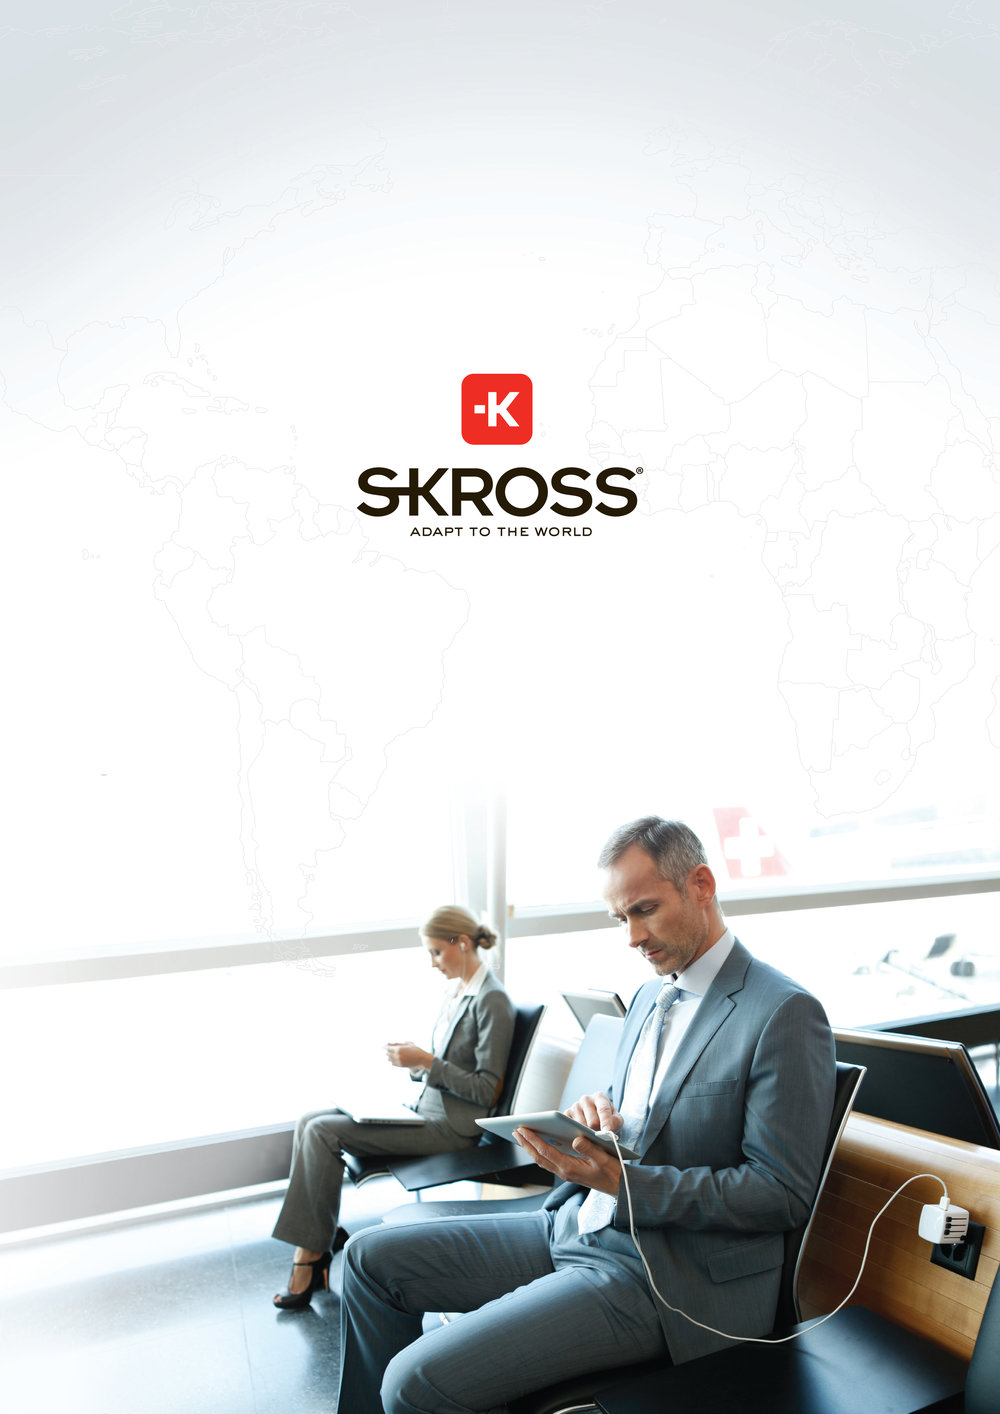 skross-adapt-to-the-world-accessories-adaptors-chargers_scorpio-worldwide_travel-retail-distributor